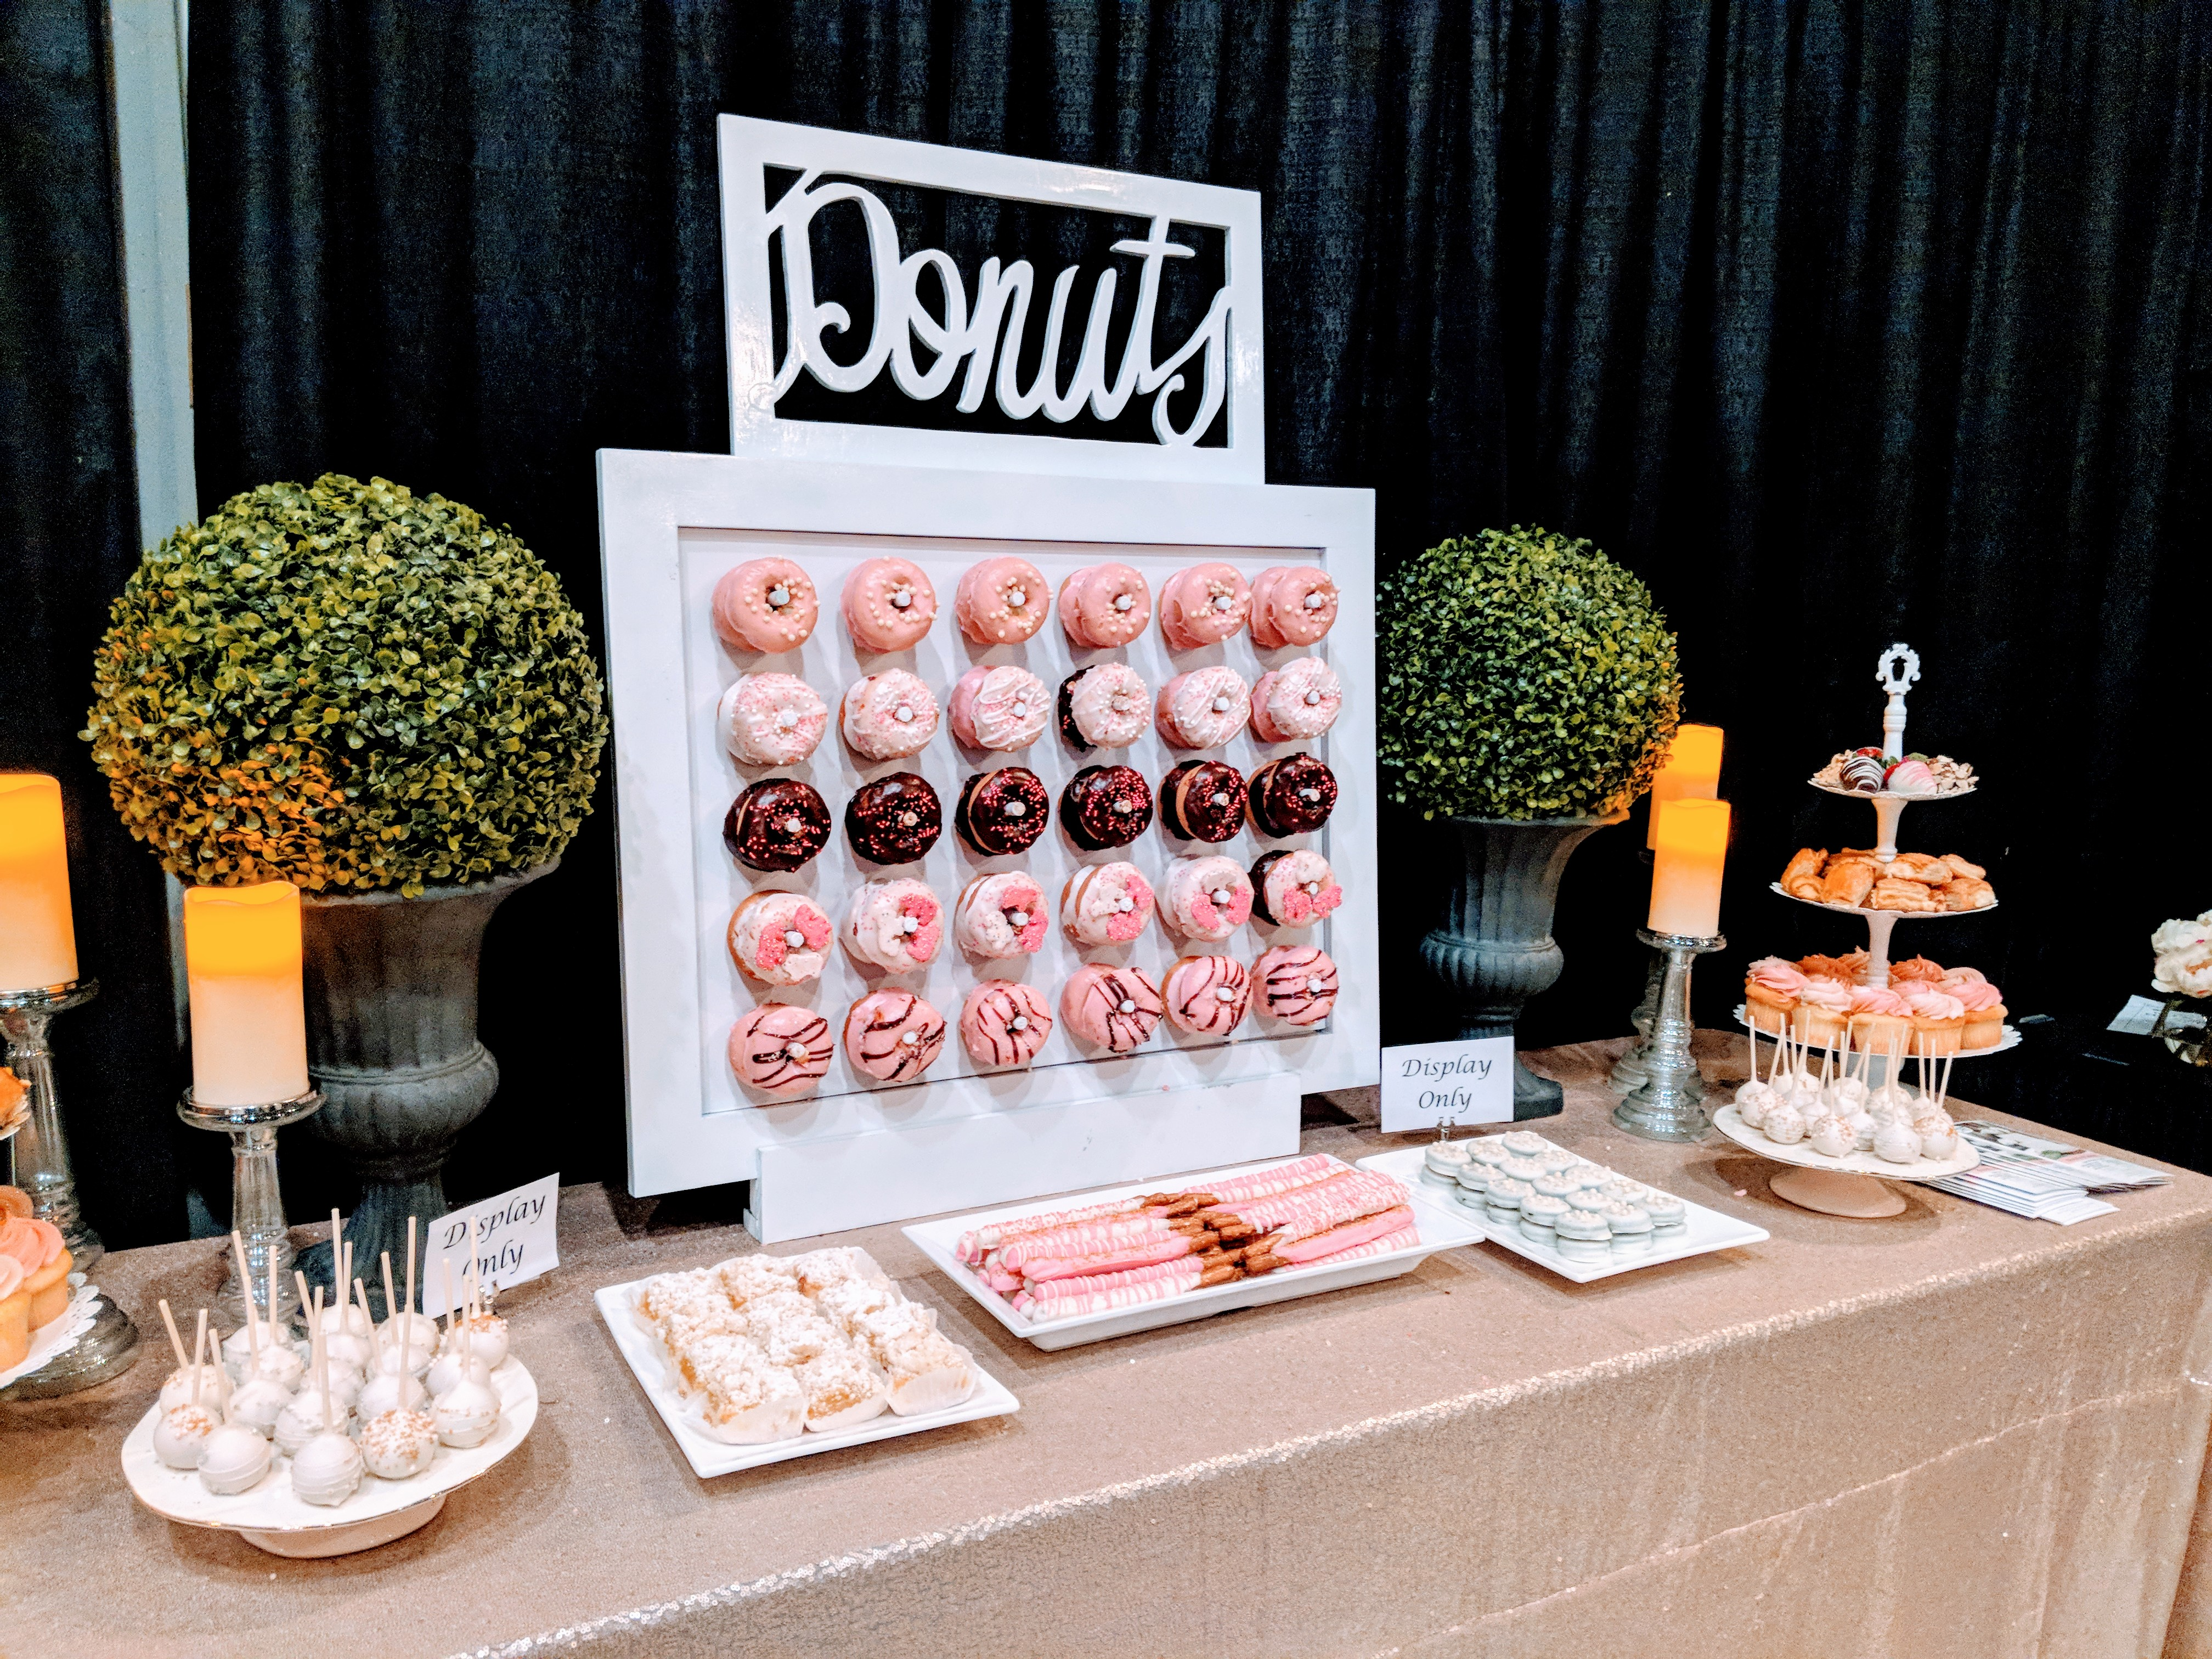 Dessert Bar with Donut Wall